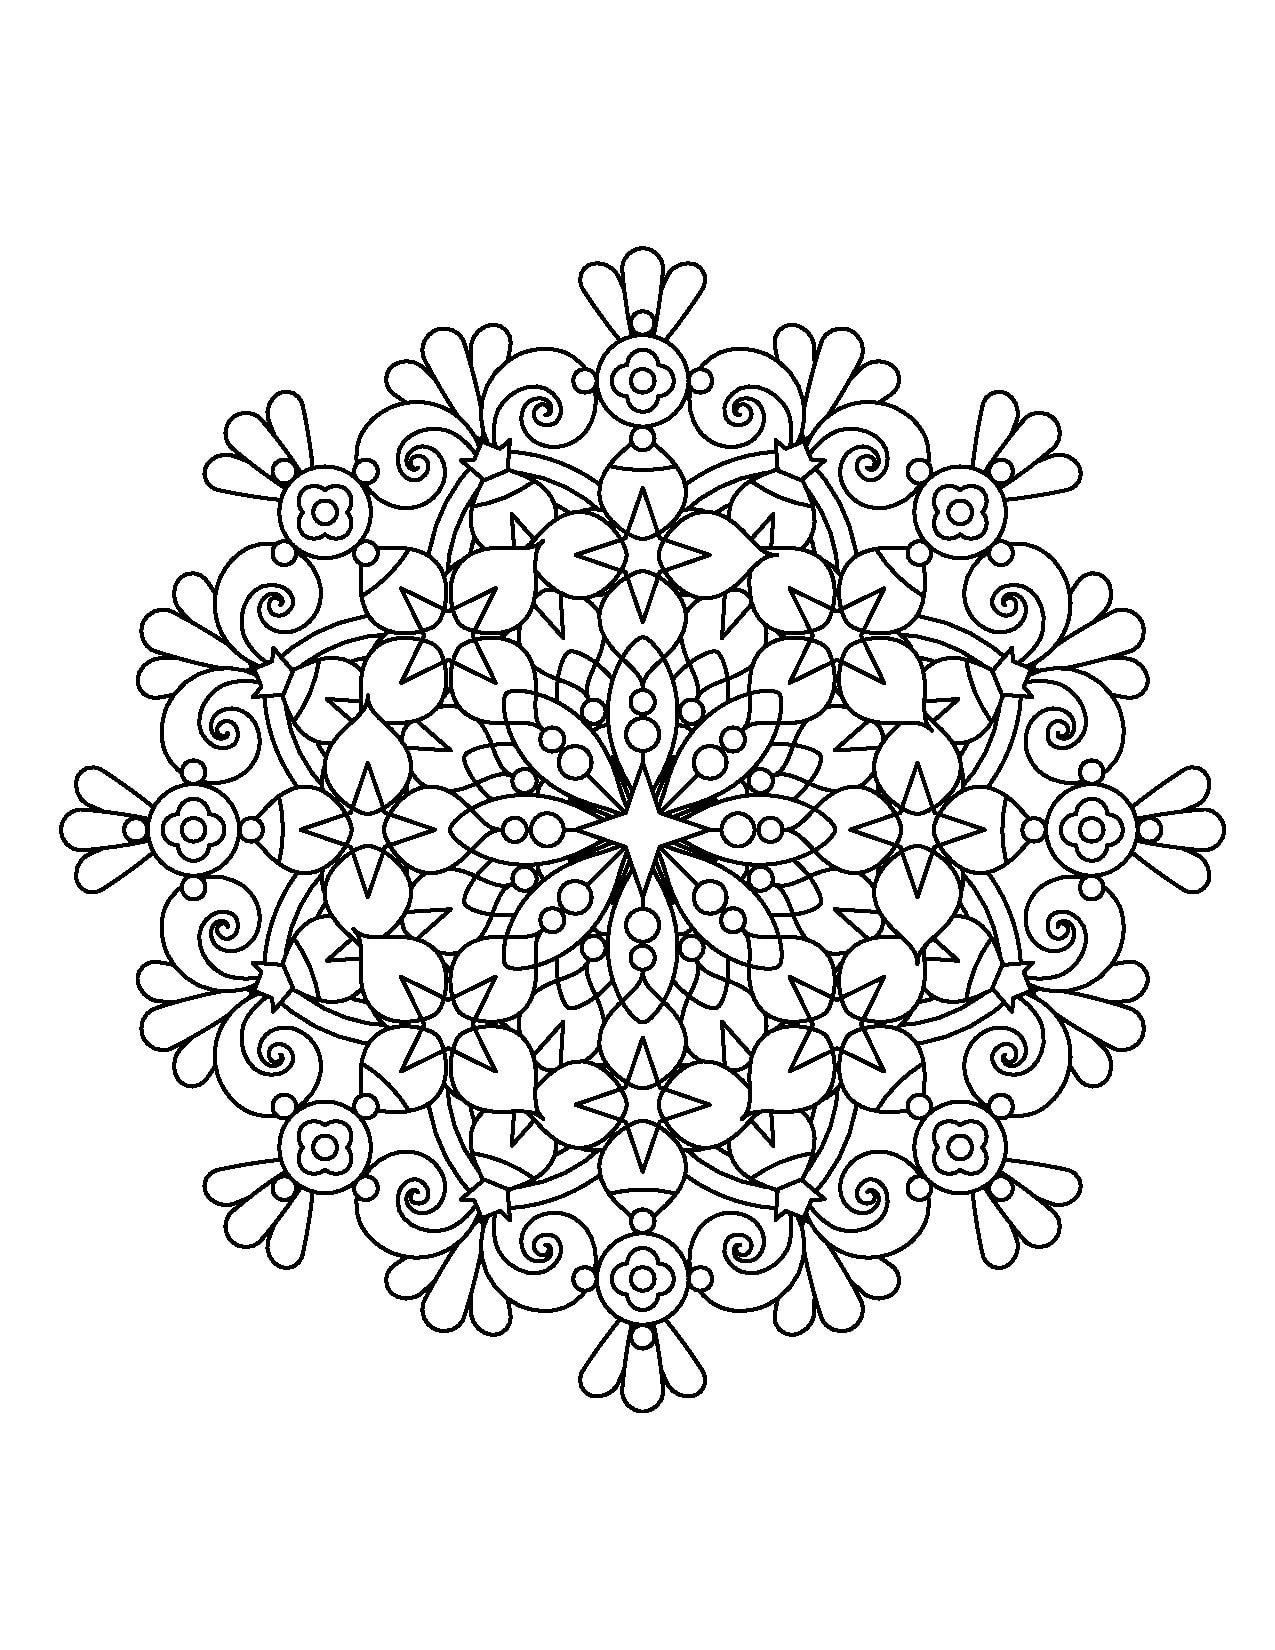 Magical Mandalas for Adults Who Color Live Your Life in Color Series – Coloring Book